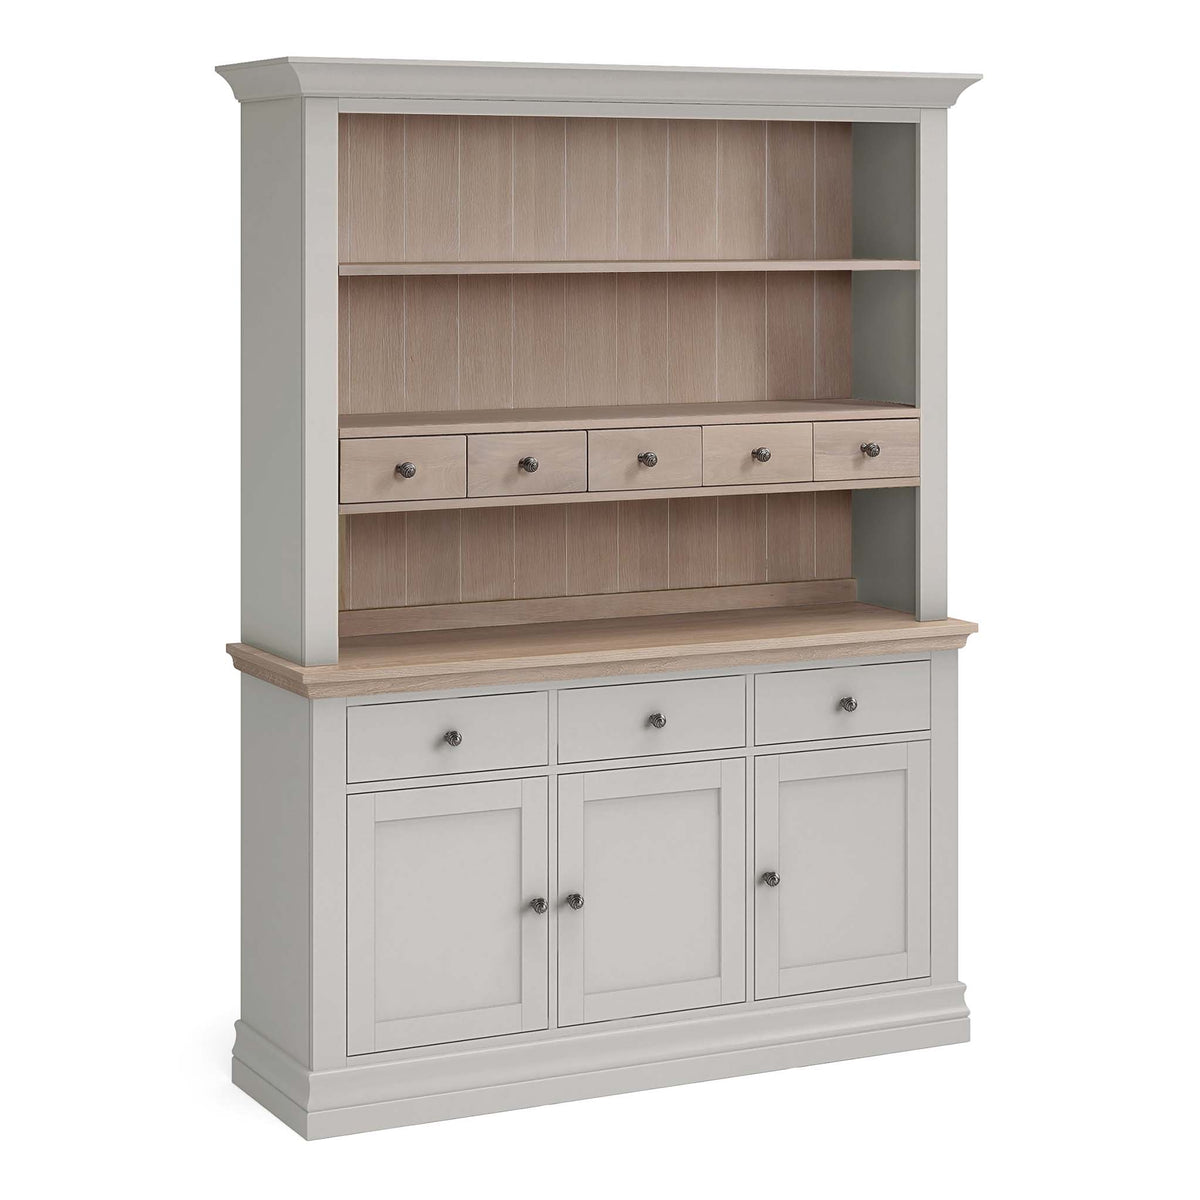 Melrose Grey Large Open Dresser from Roseland Furniture